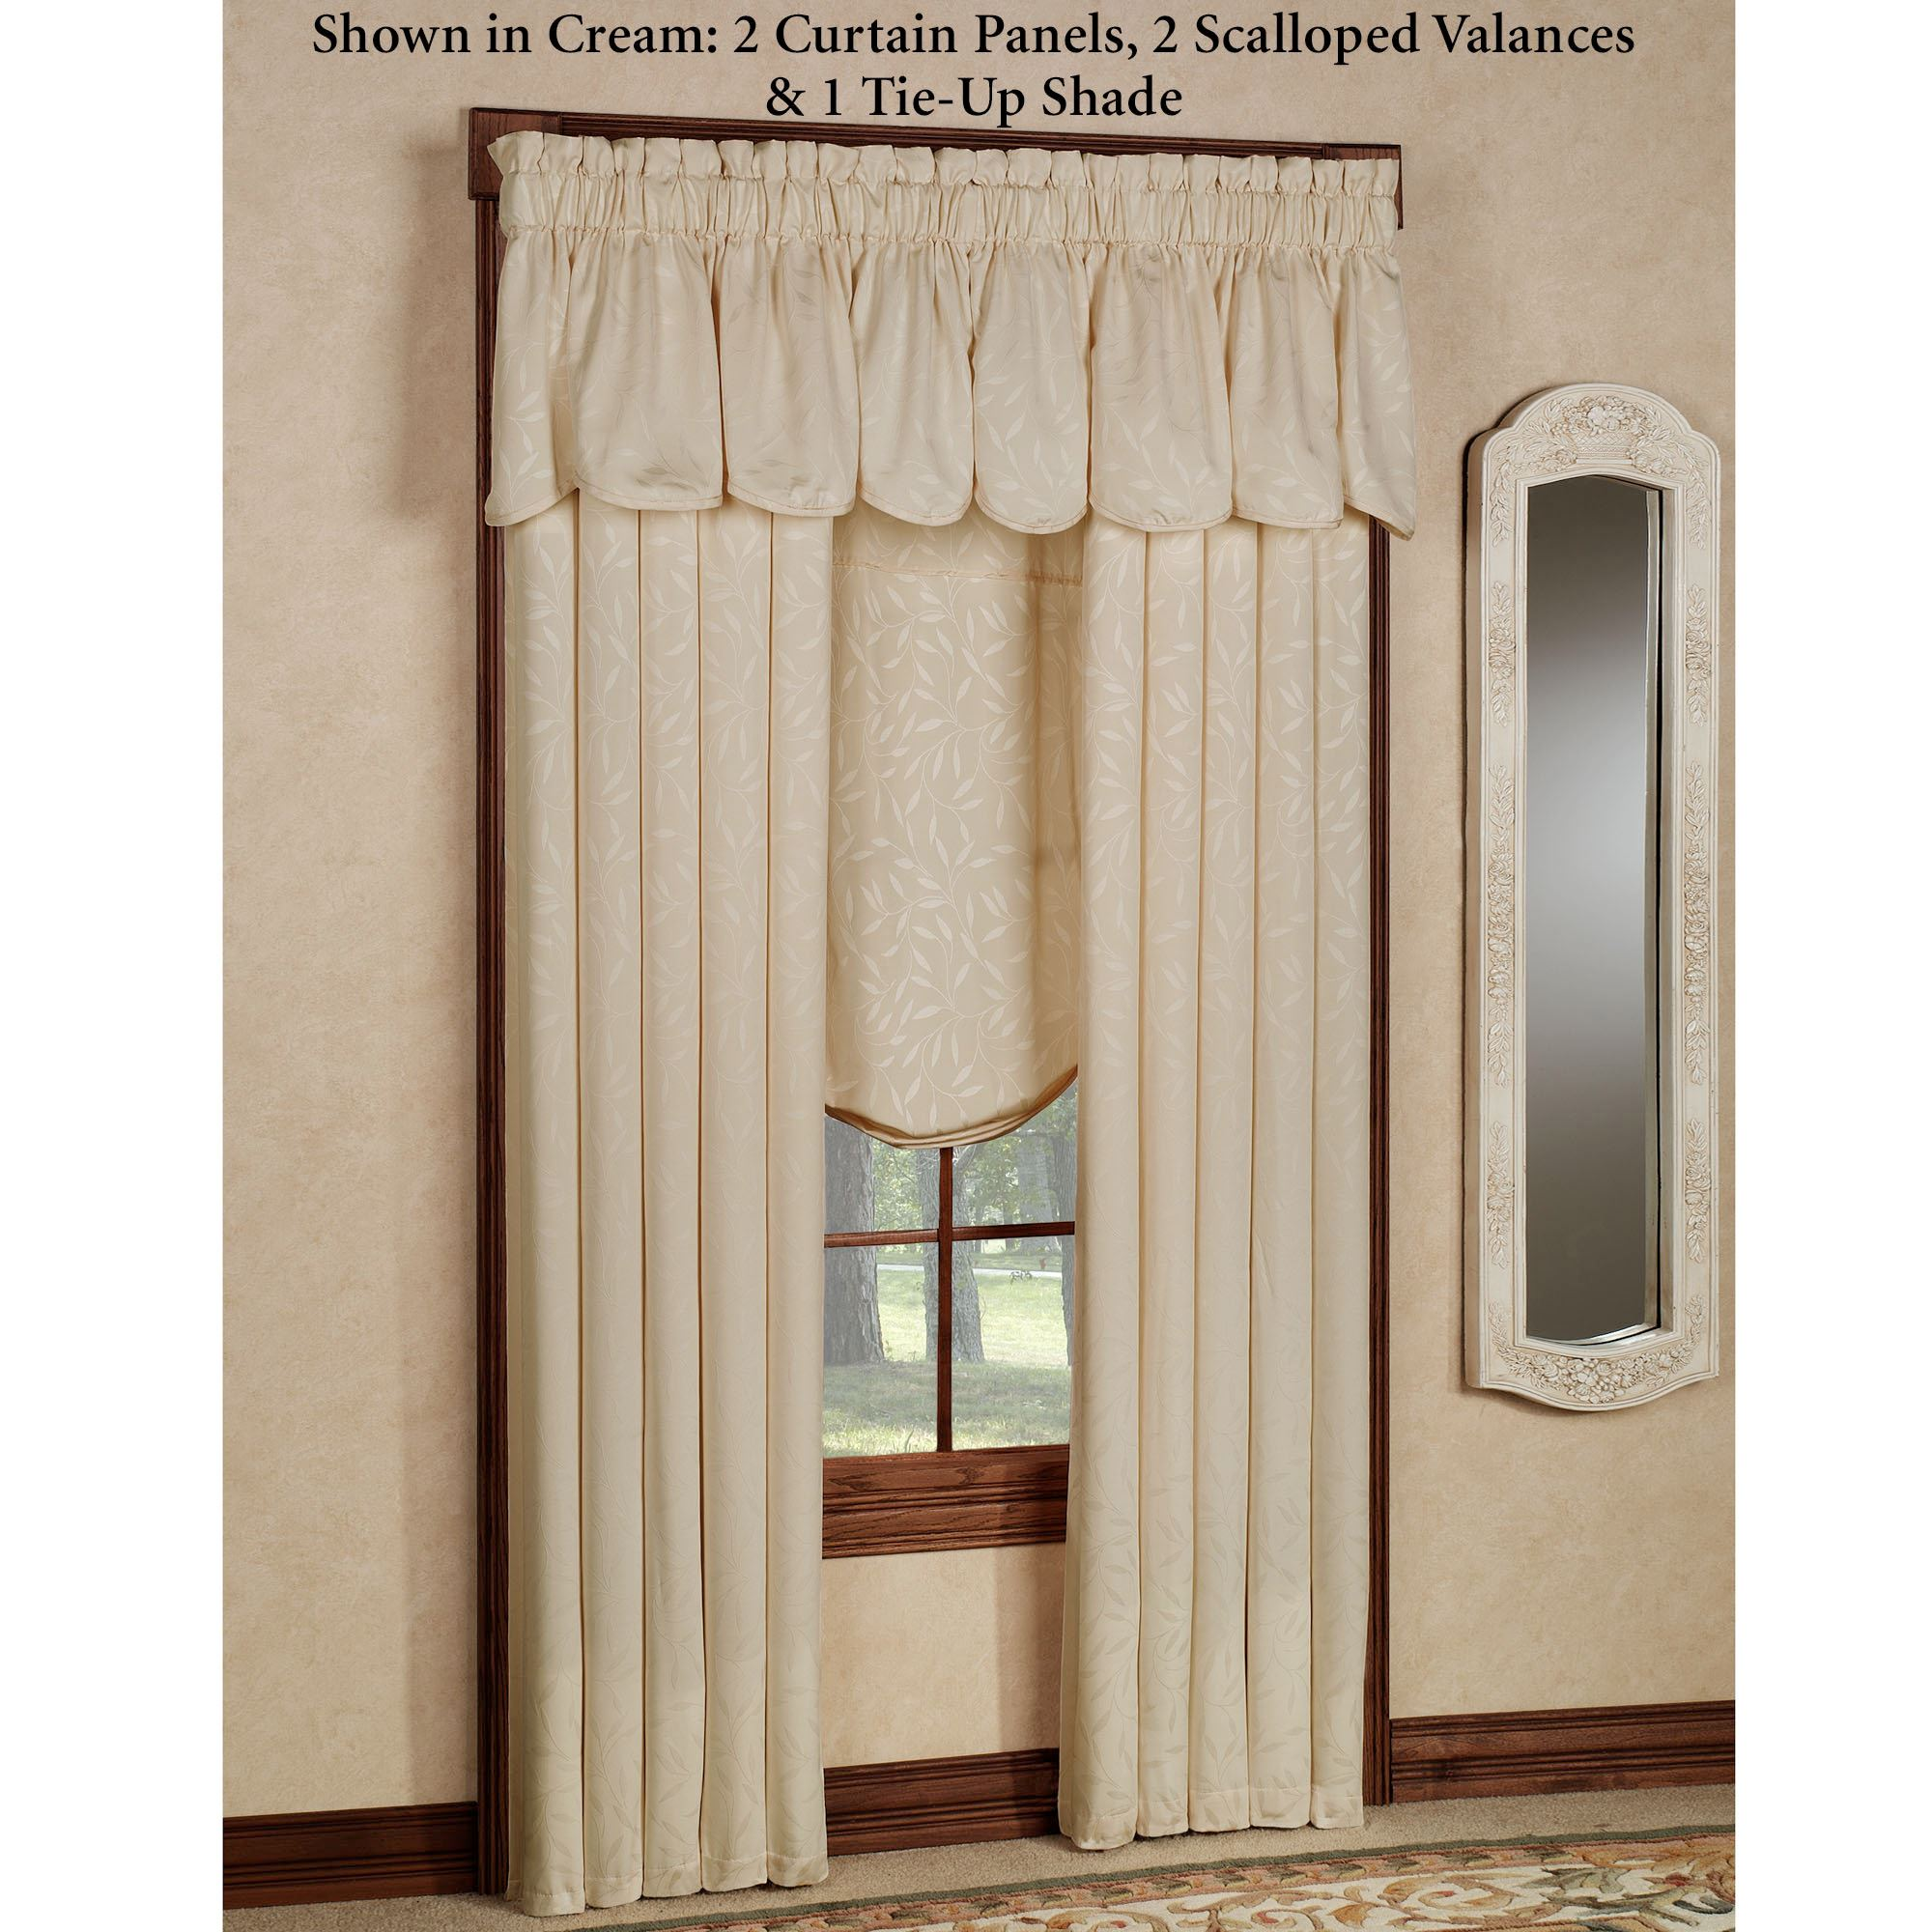 elegant fix ceiling and for ideas room designs curtain pole bay stylish curtains seat with living combine tone window rooms